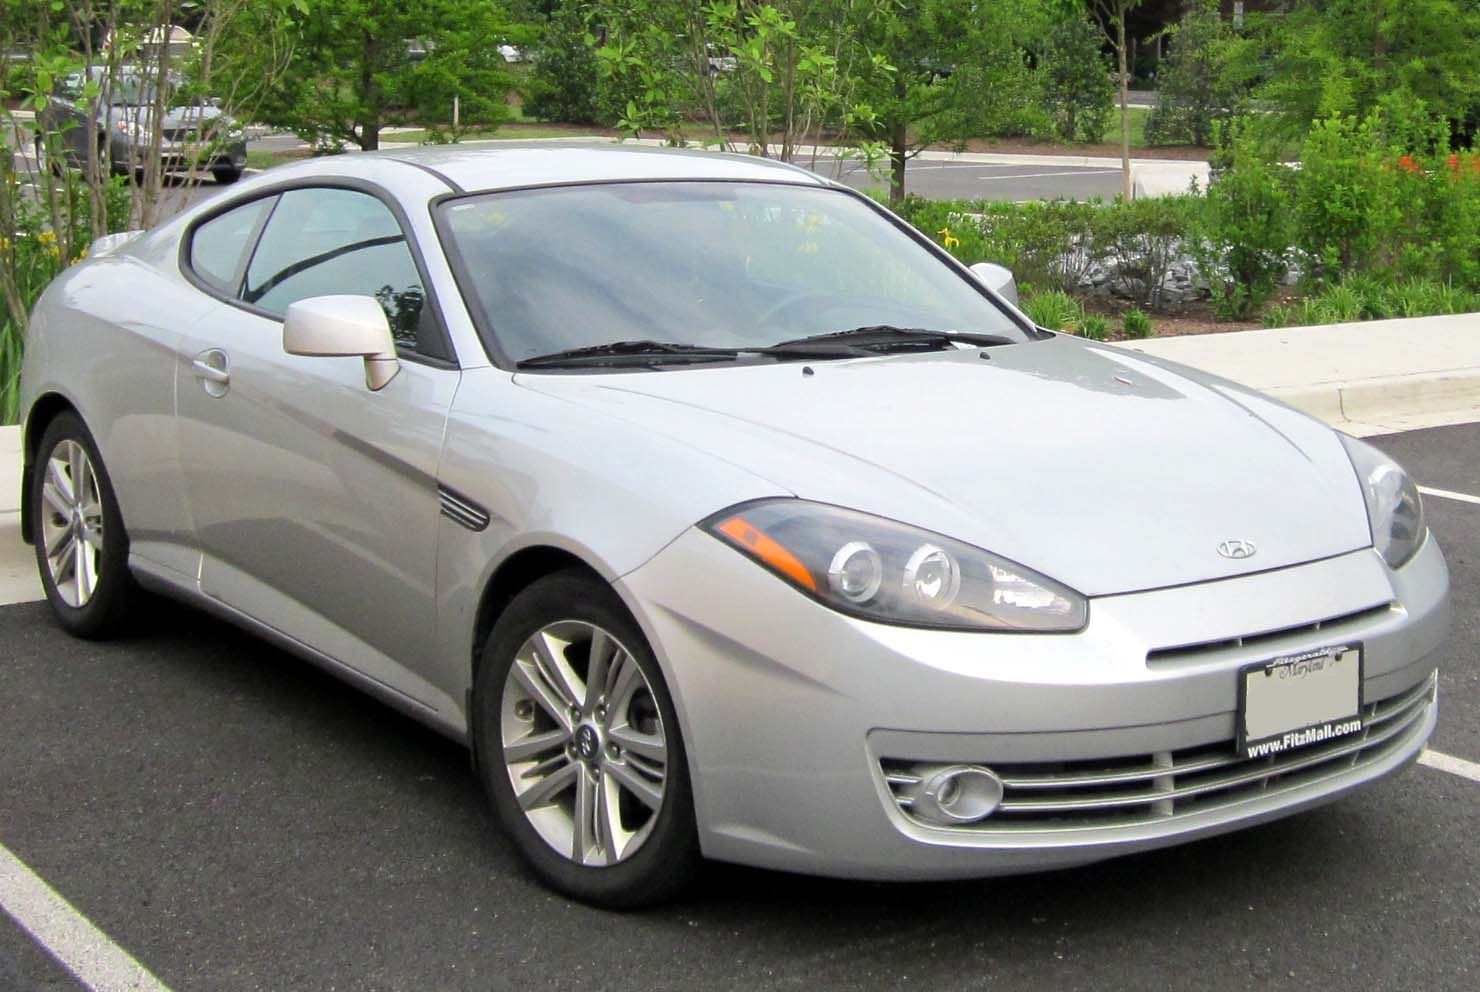 pictures hyundai tiburon pictur on coupe genesis gs pic picturescars